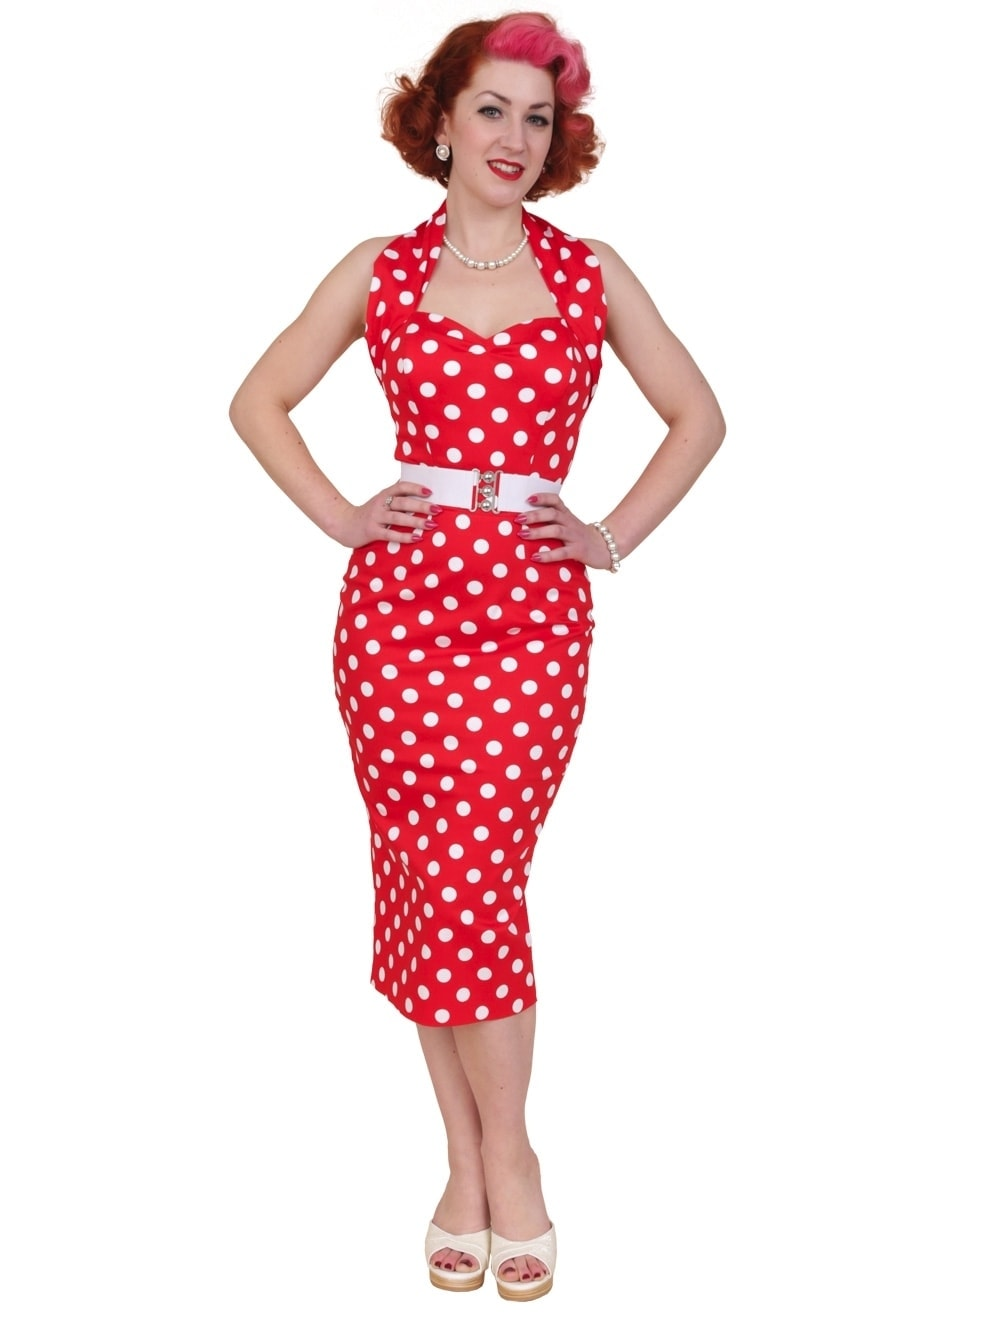 halterneck pencil red polkadot dress p273 11195 image - Western Wedding Skirts